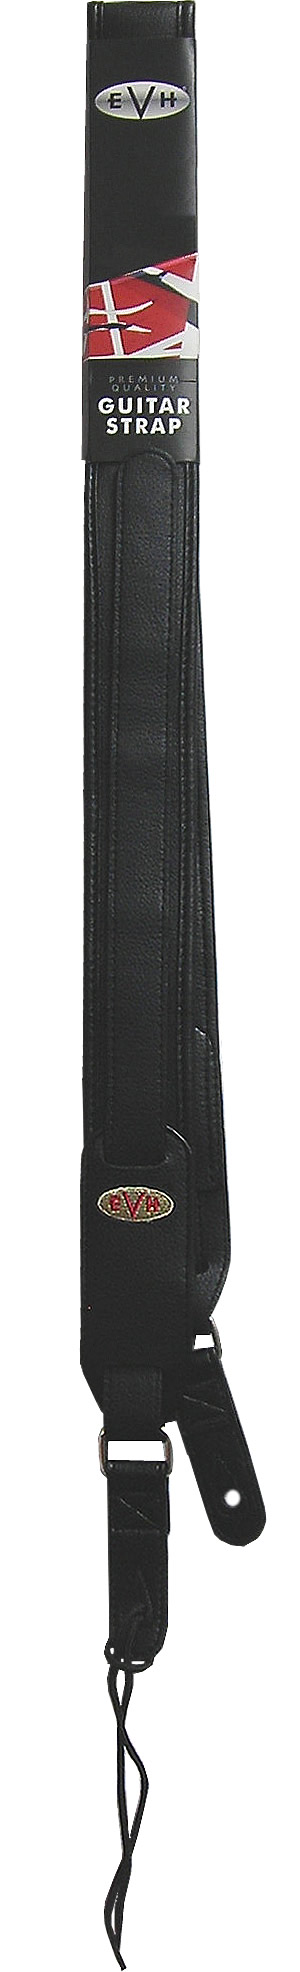 Premium Leather Signature Guitar Strap Black